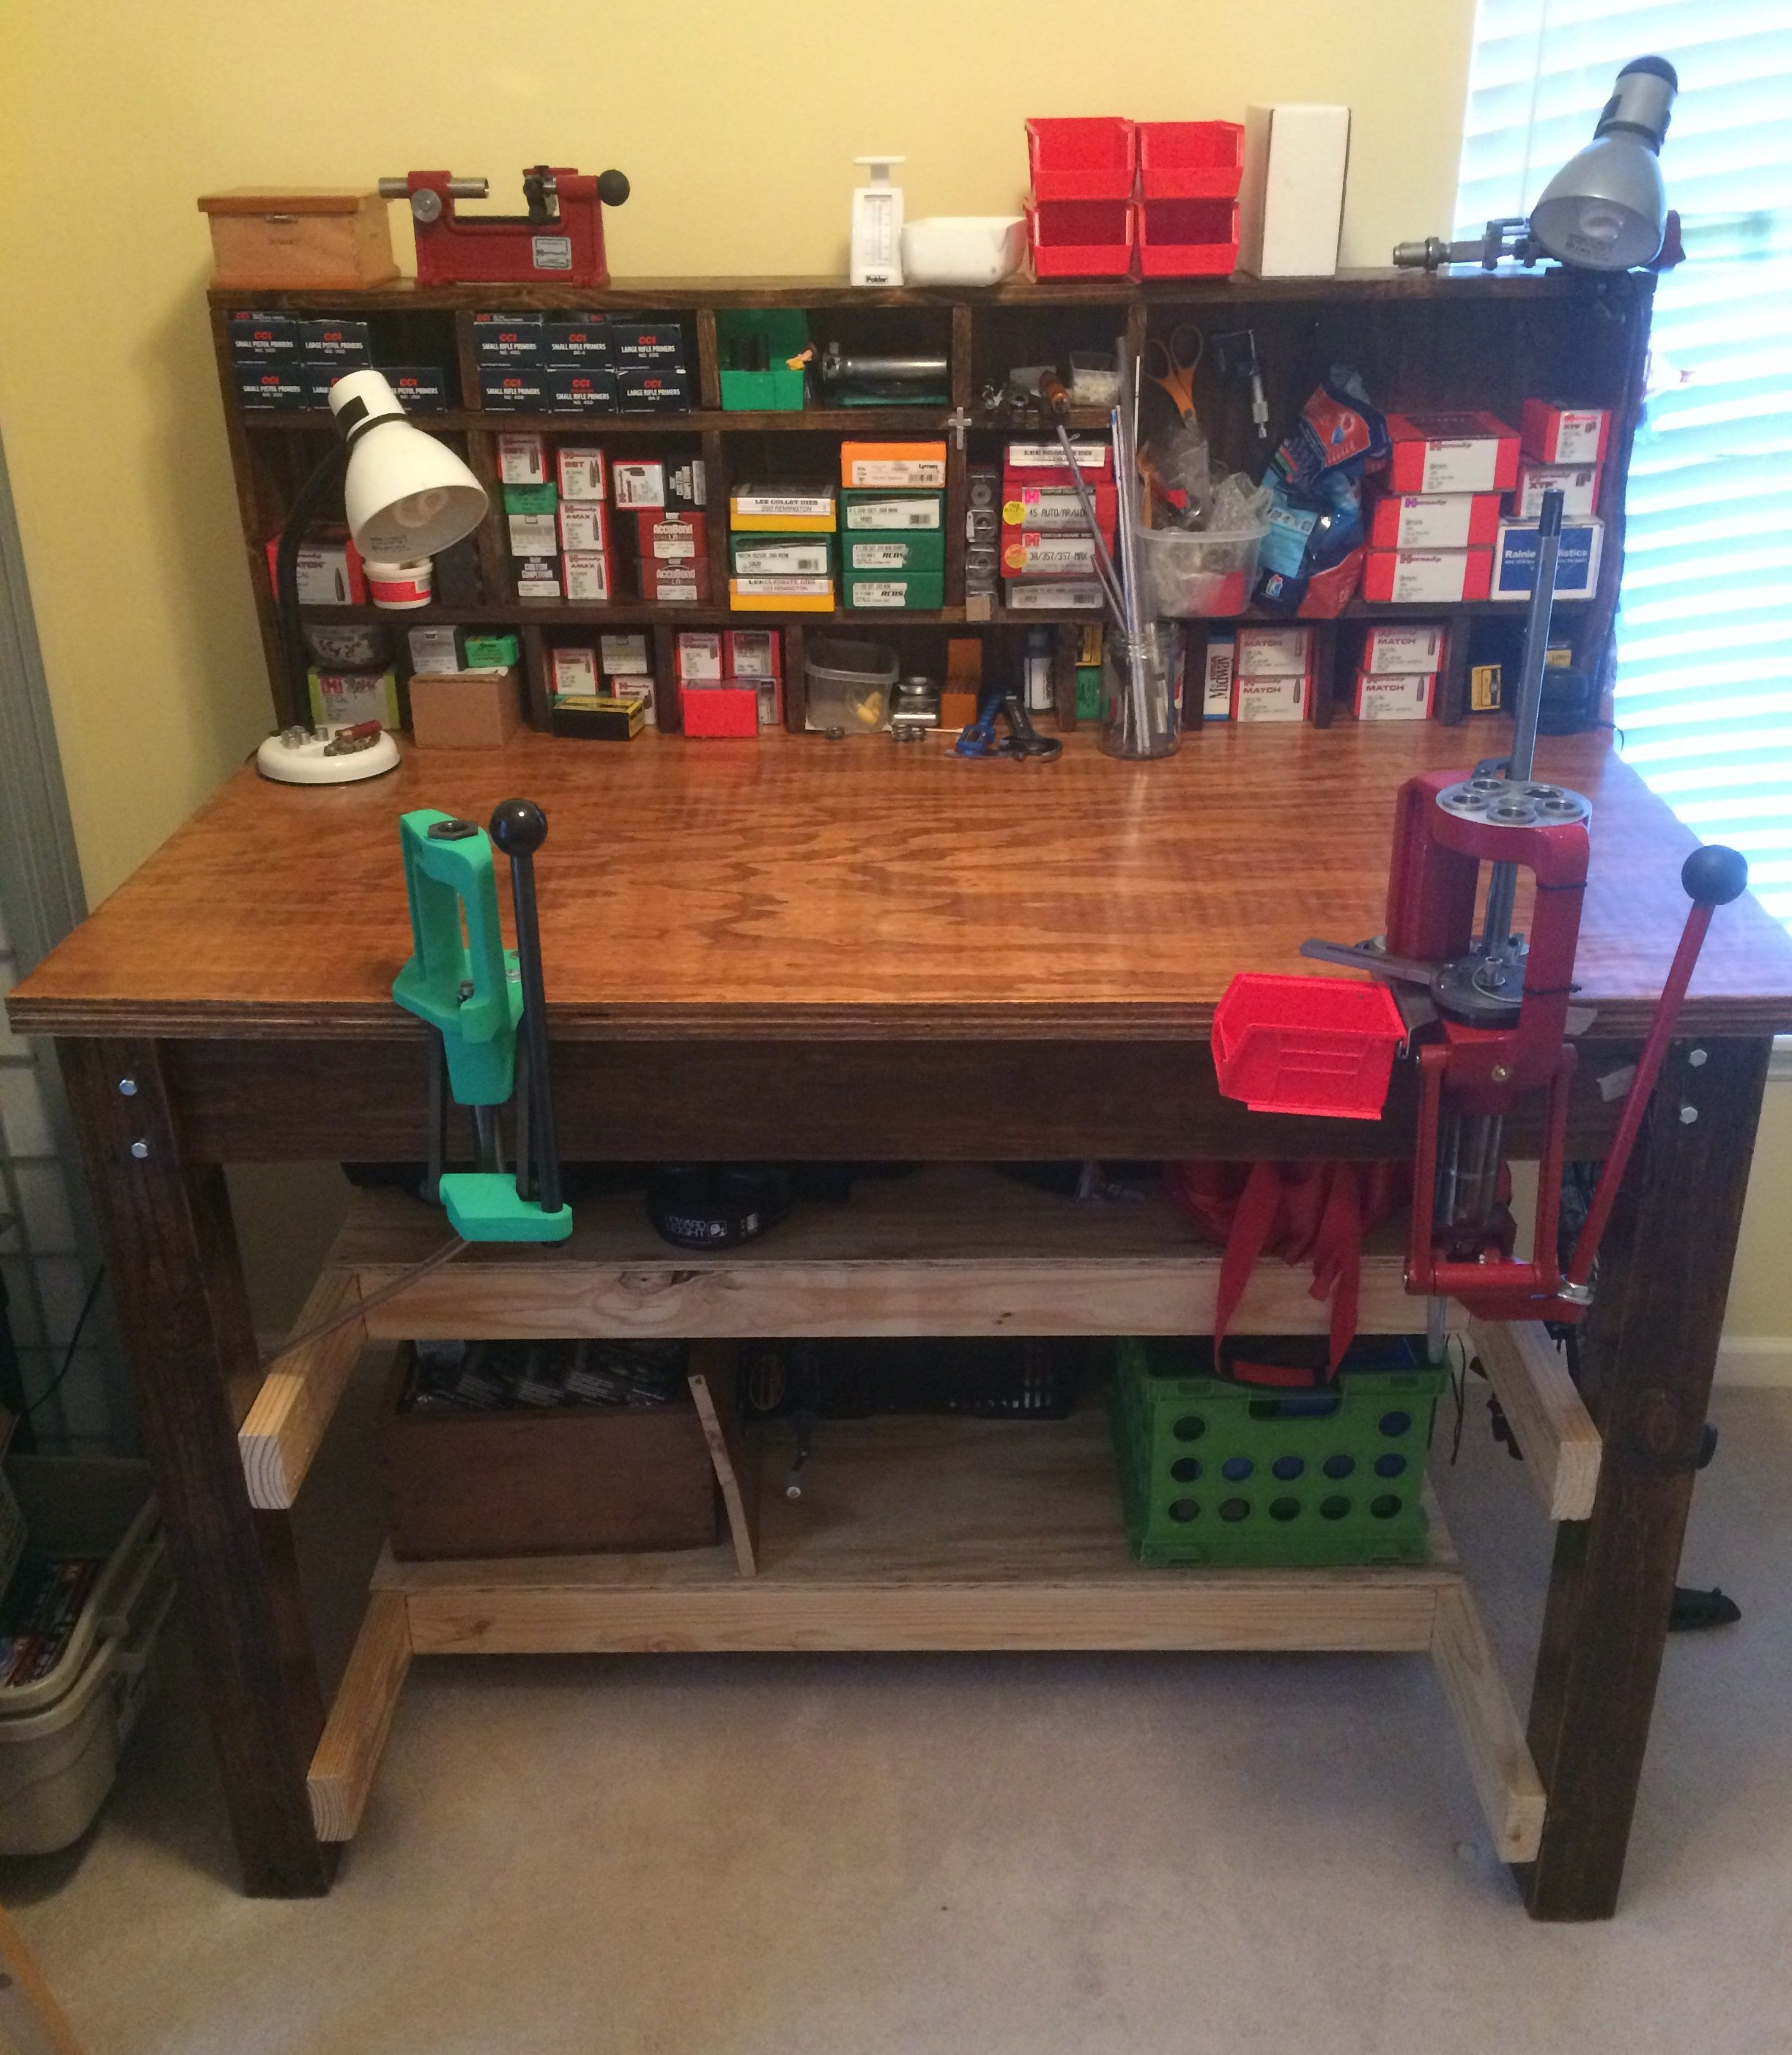 Learn From My Successes And My Mistakes As You Build A Custom Reloading Bench With Do And Don T Do Tips Reloading Bench Reloading Room Reloading Bench Plans